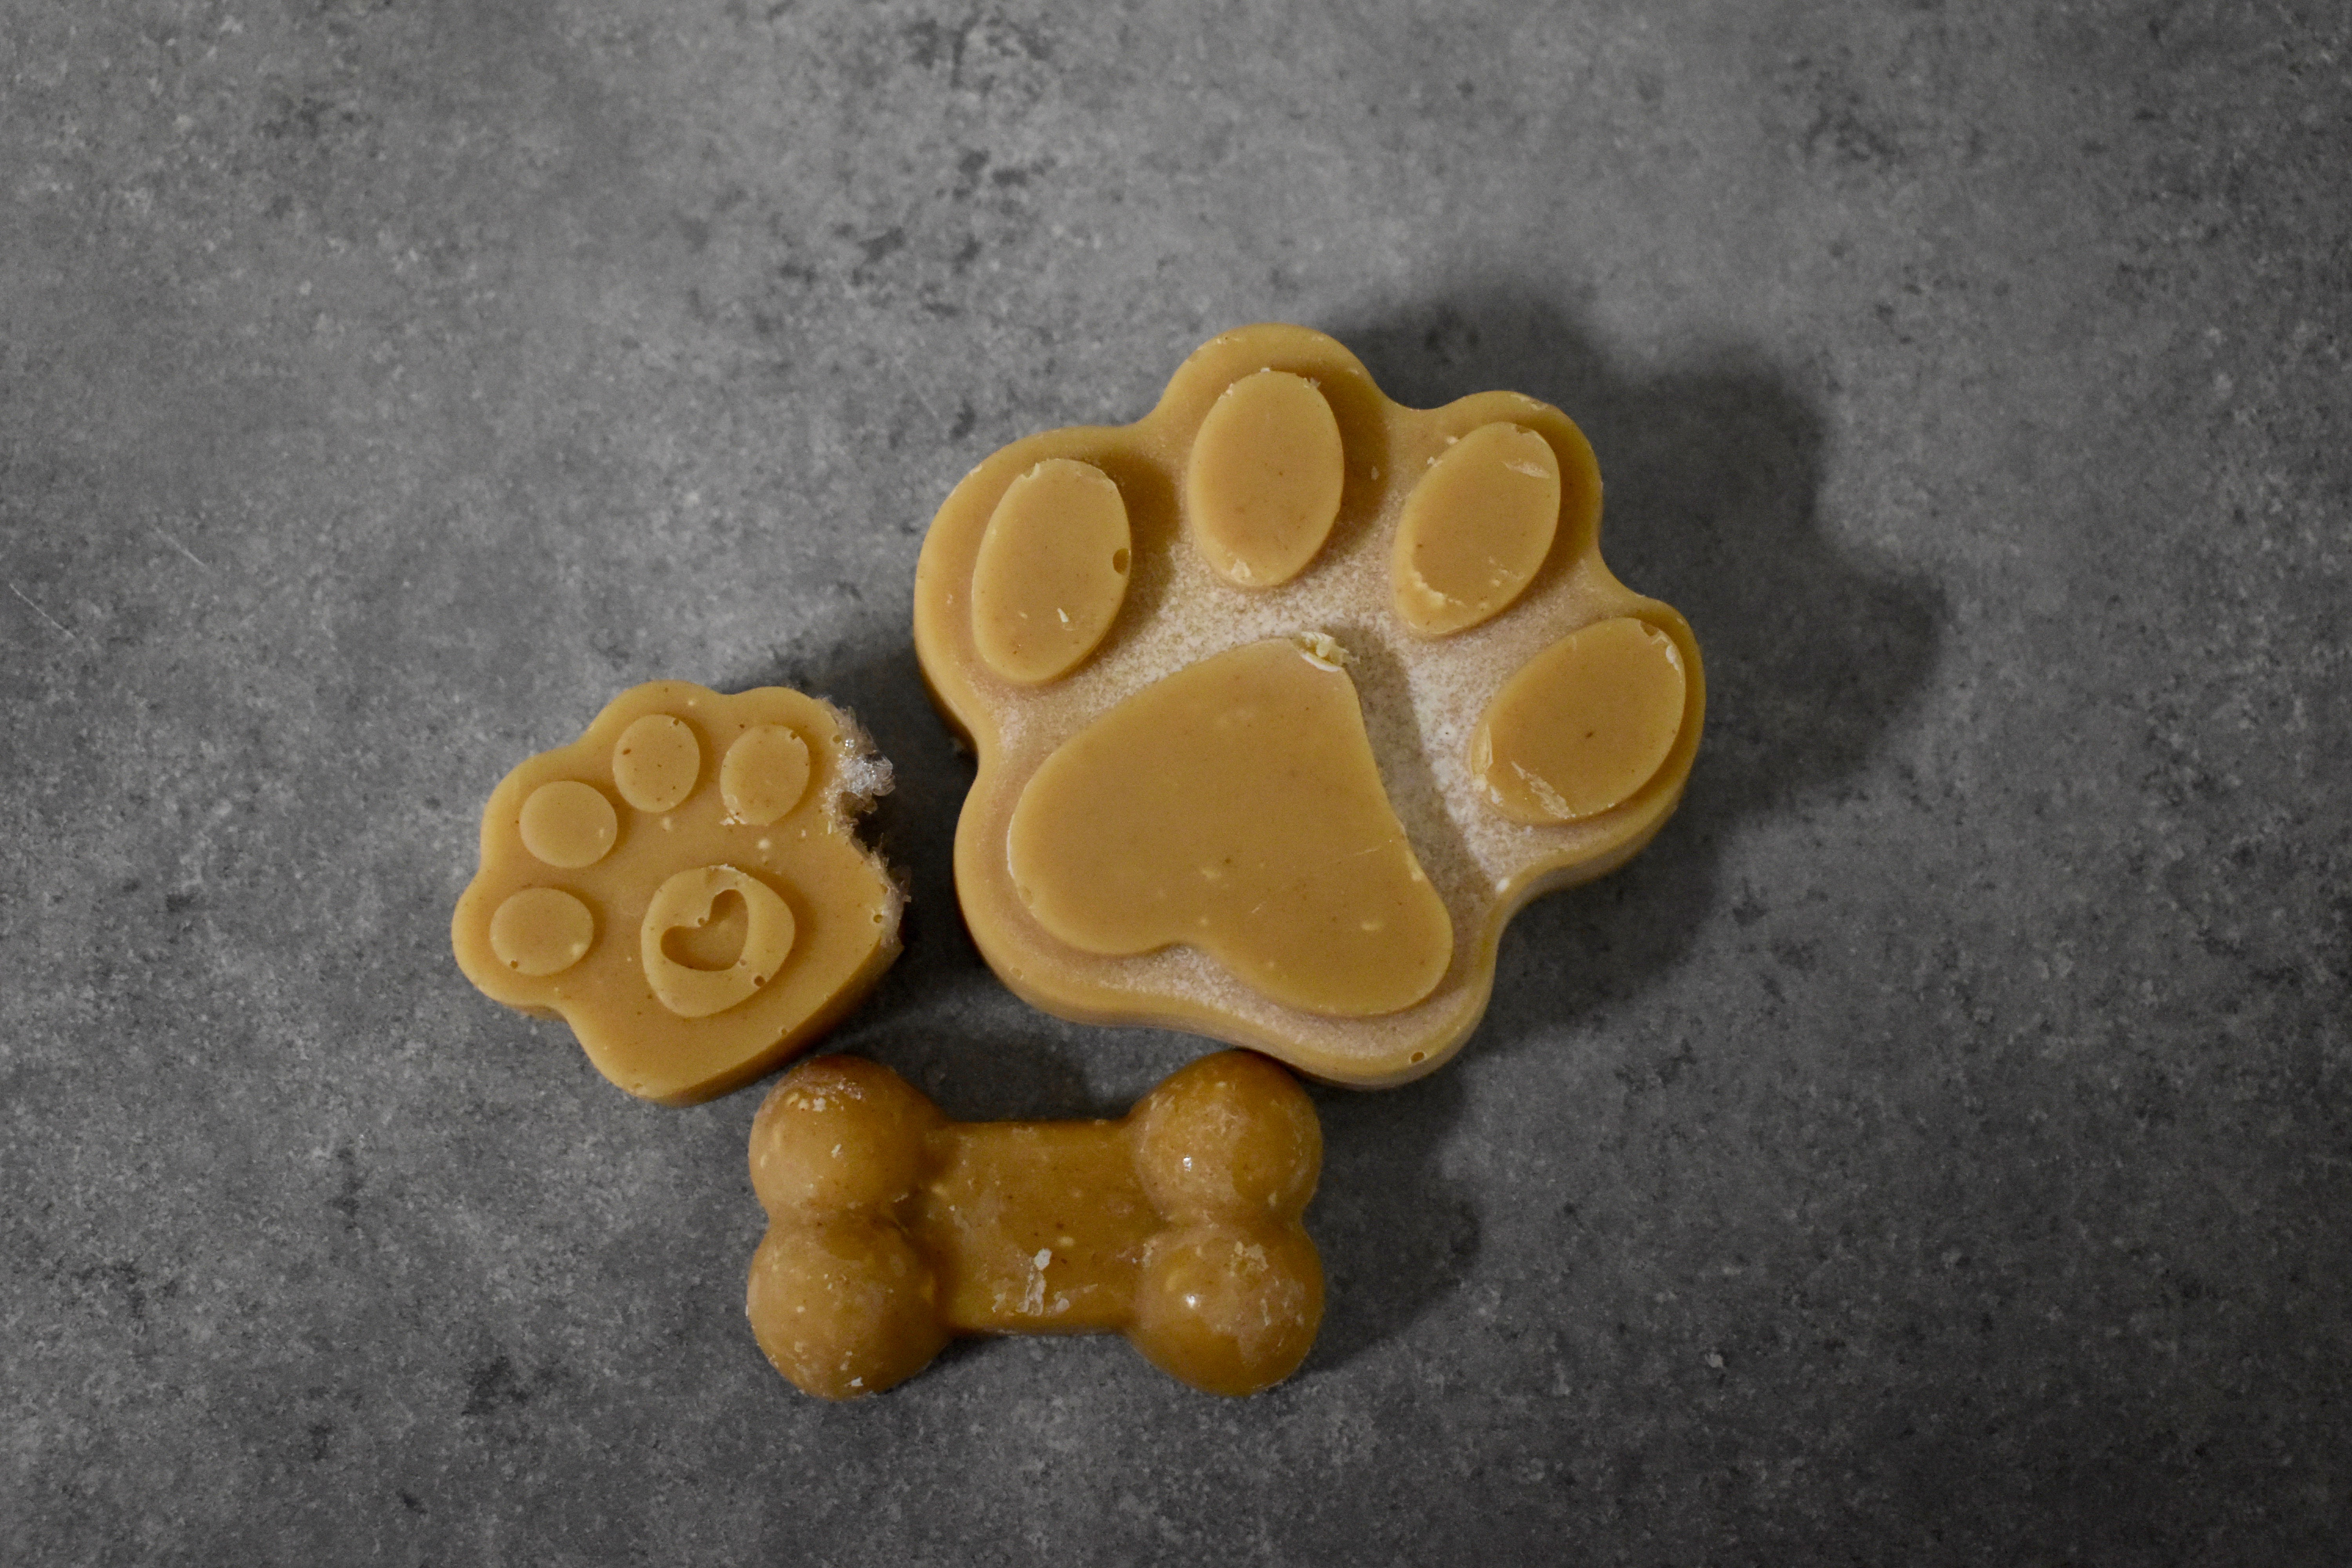 Delicious homemade treats are crafted for our boarding and daycare guests